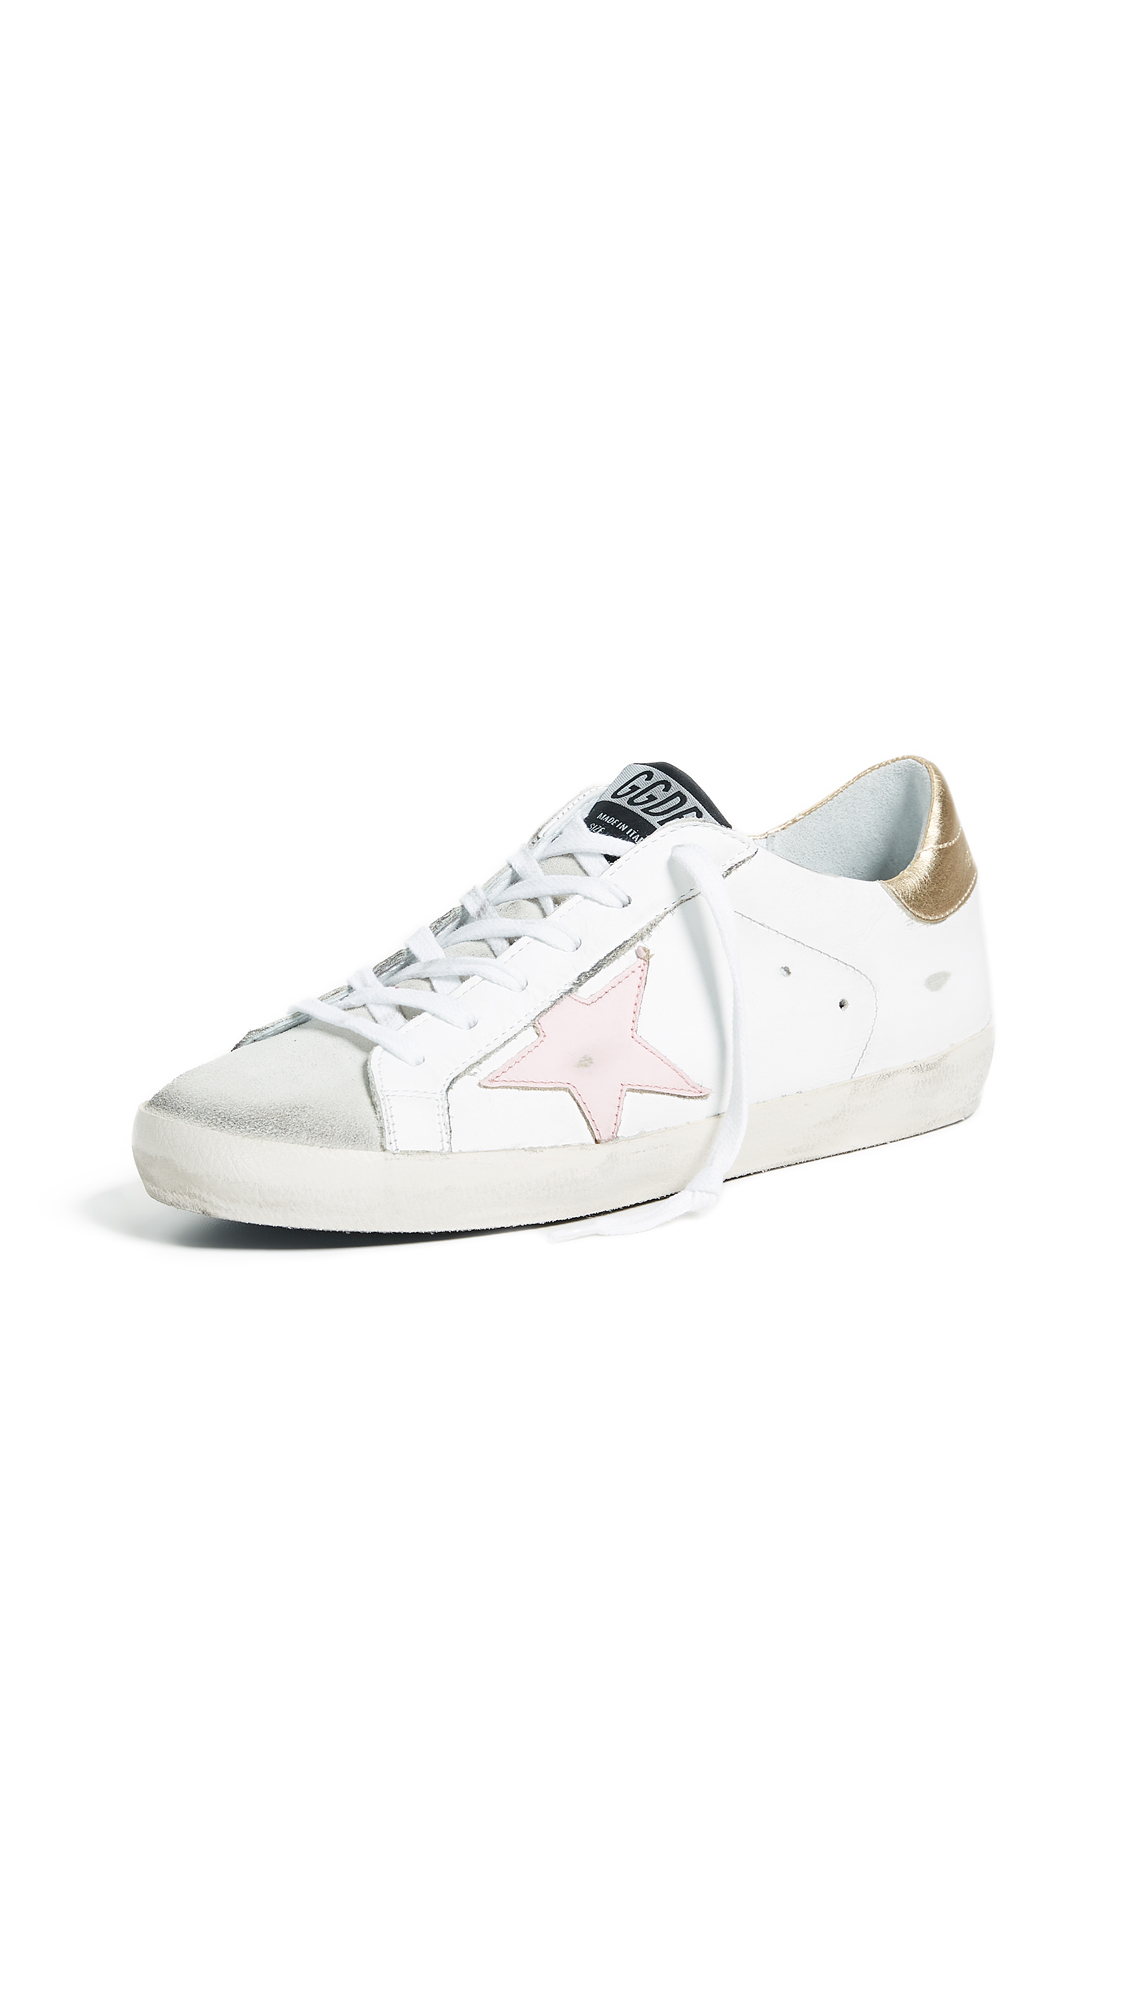 Golden Goose Superstar Sneakers - White/Gold/Pink